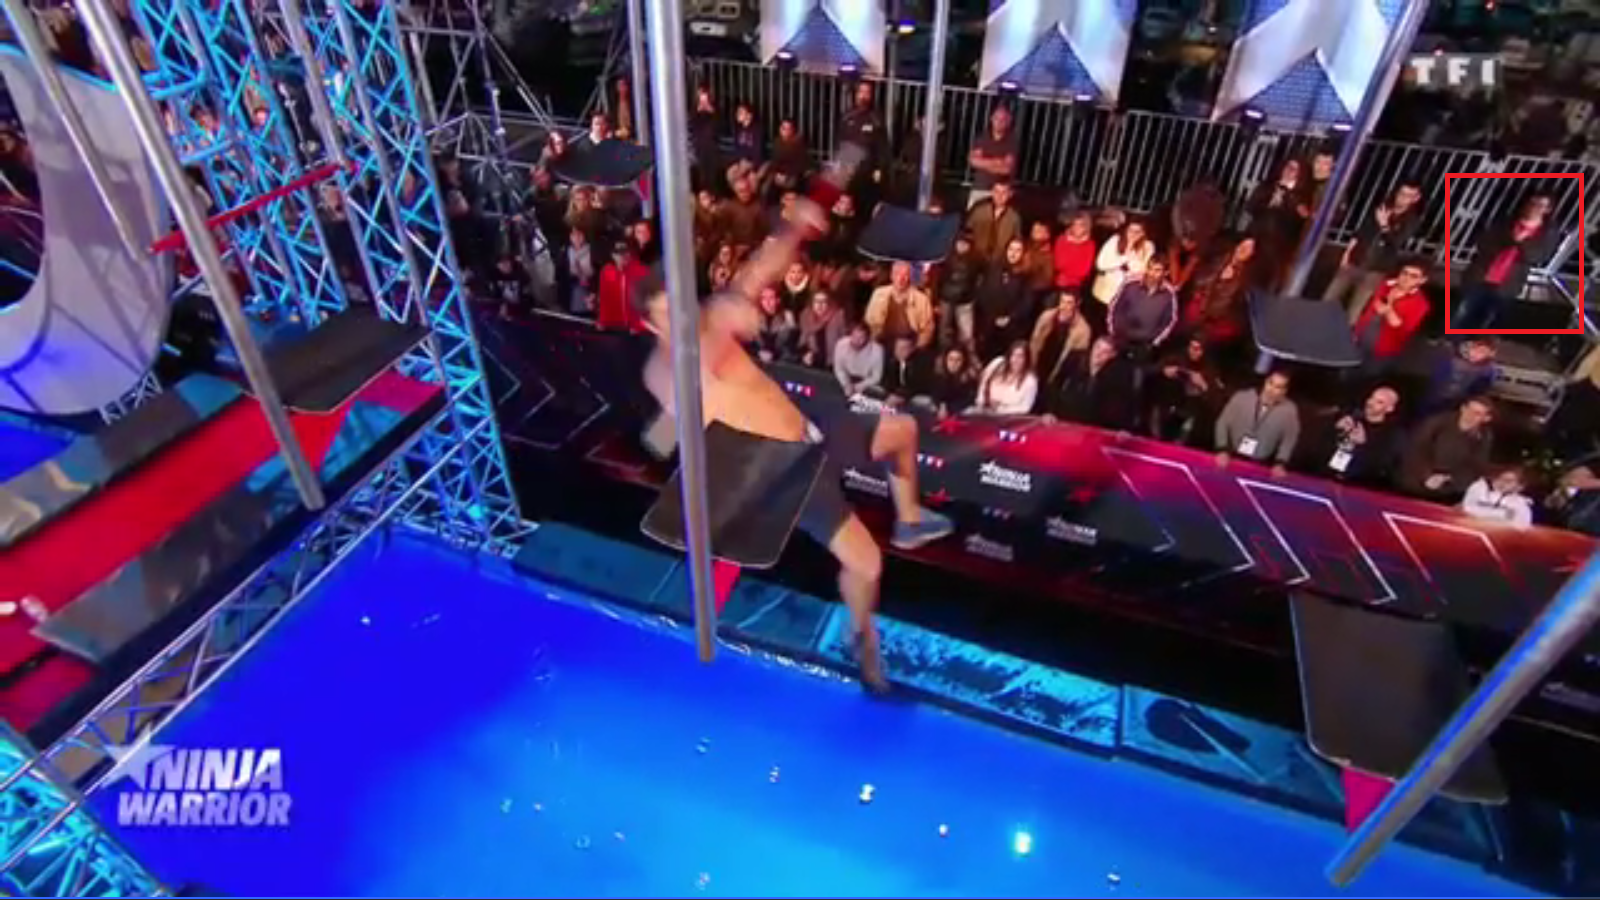 Ninja Warrior - TF1 - Page 6 440m